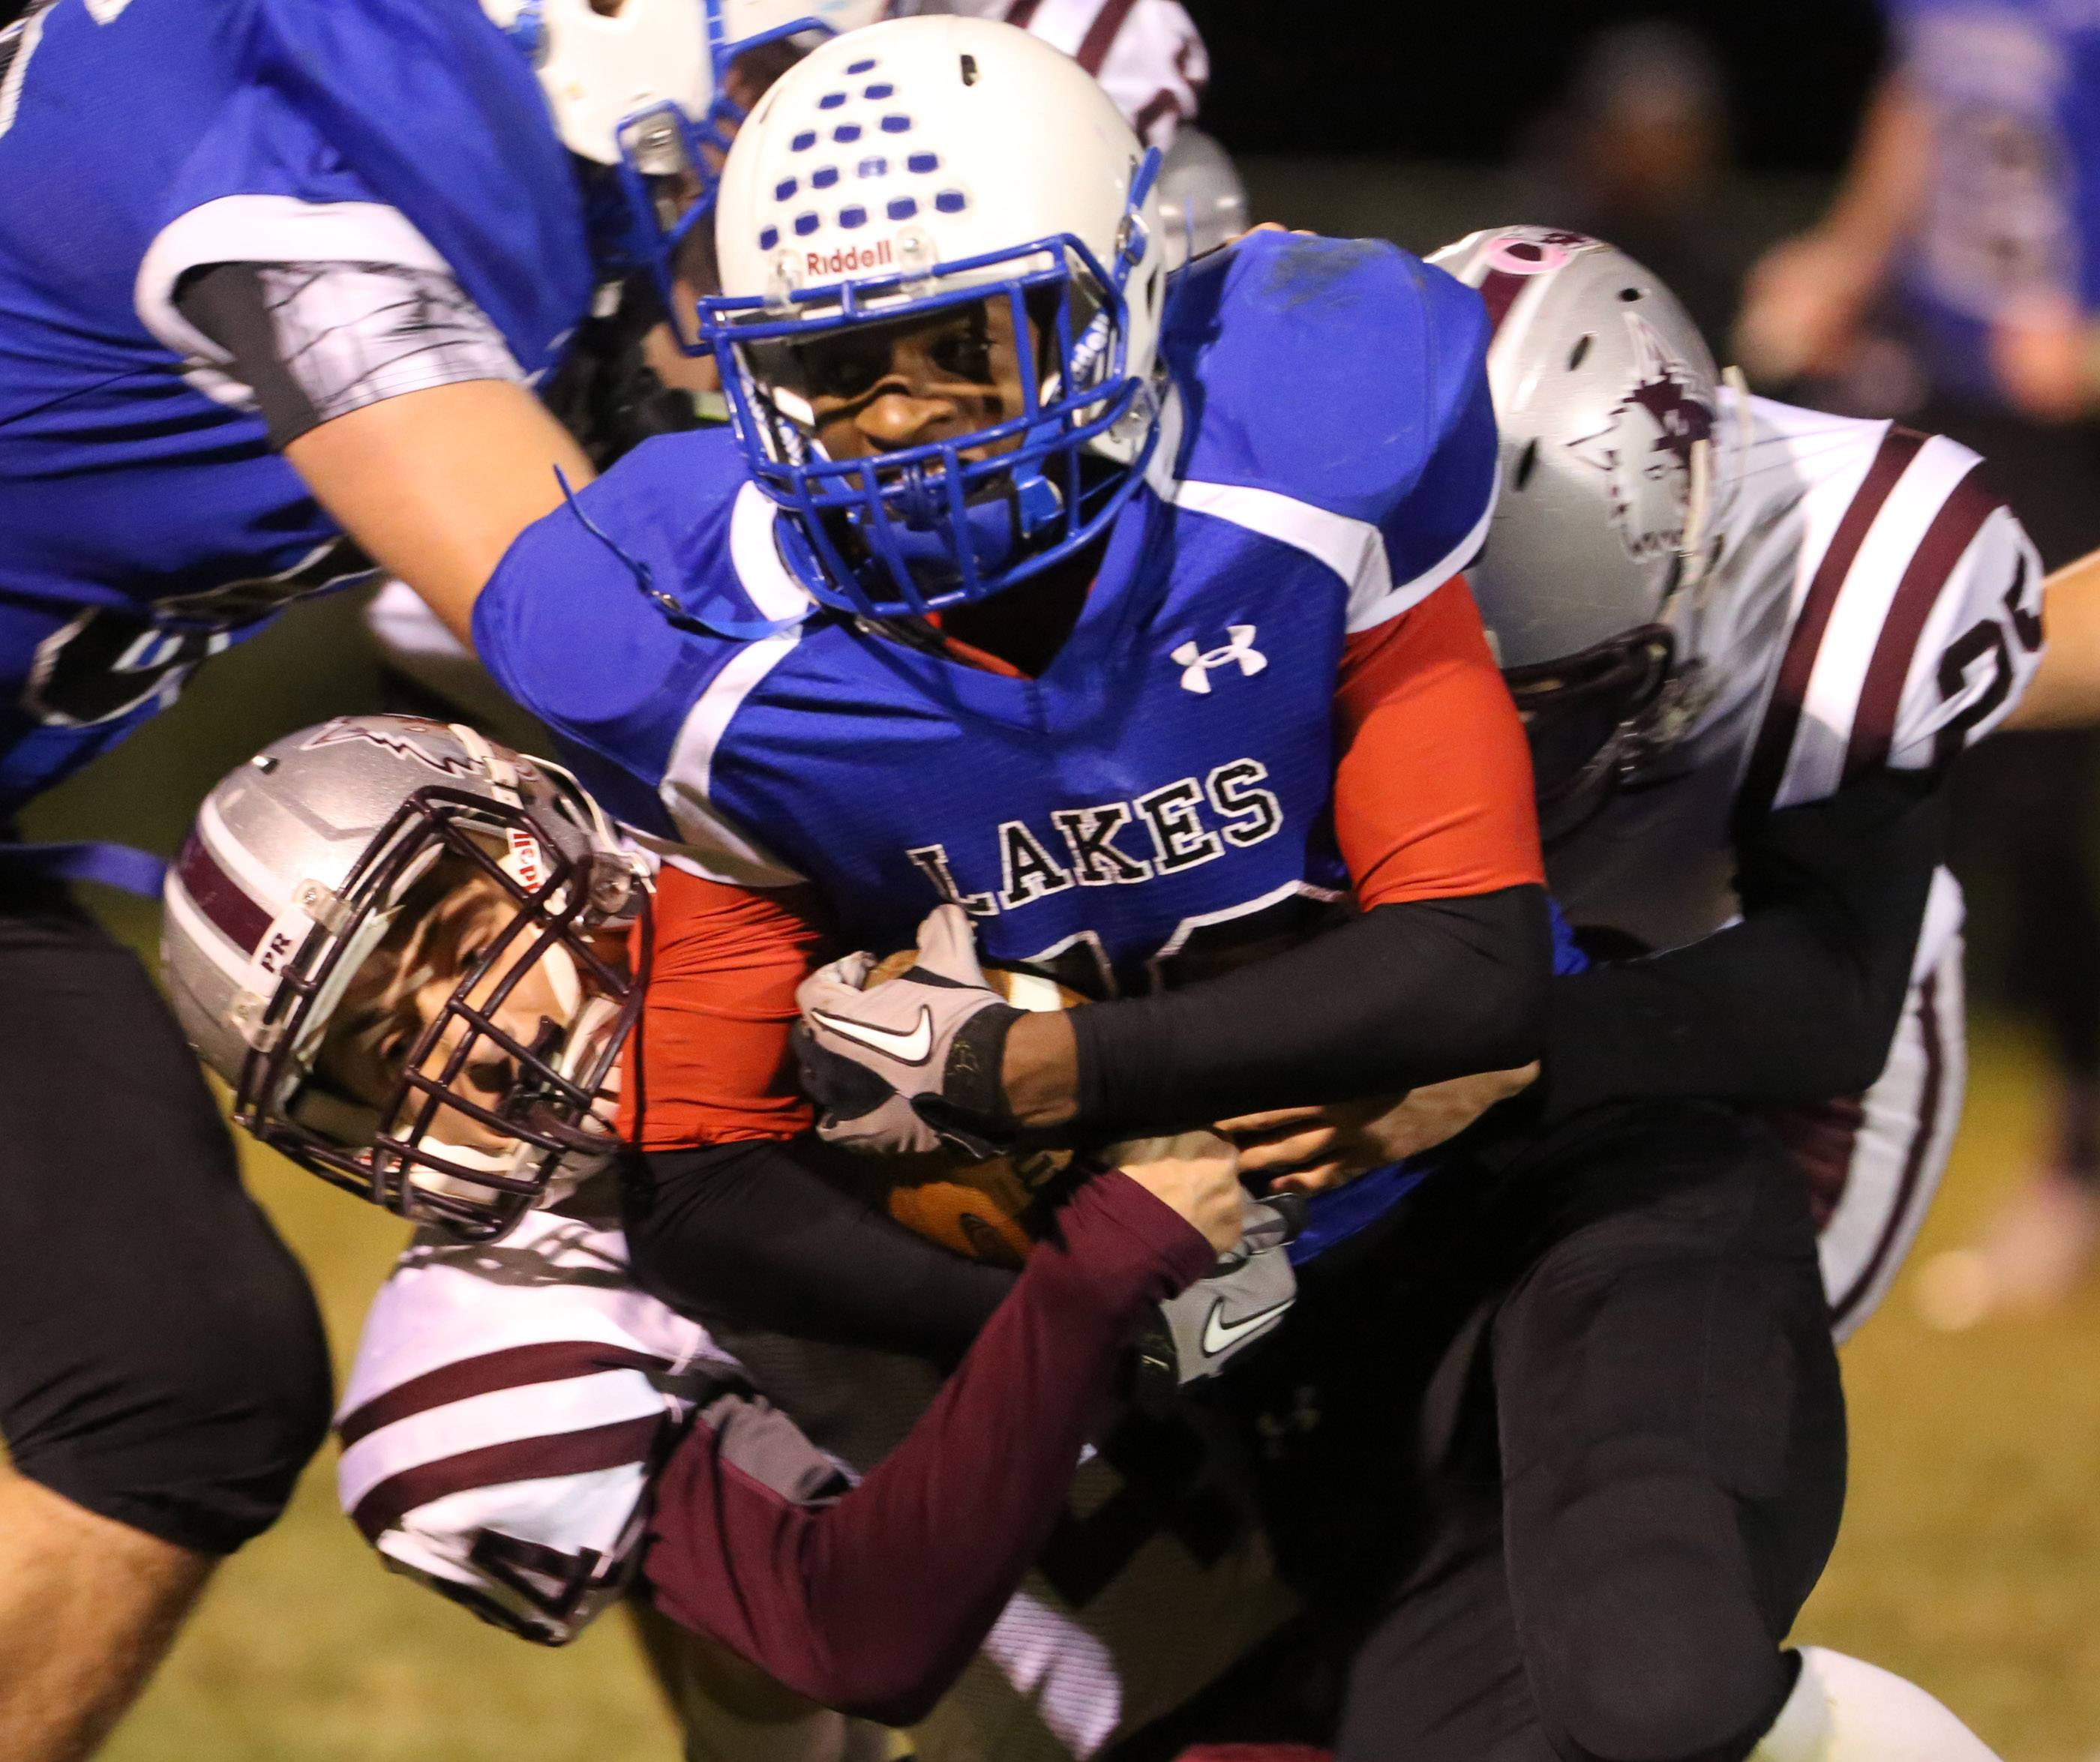 Lakes running back Izayah James is pulled down by Prairie Ridge defender Nicholas Greenberg last season. Greenberg returns this season for the defending Fox Valley Conference Fox Division champions.